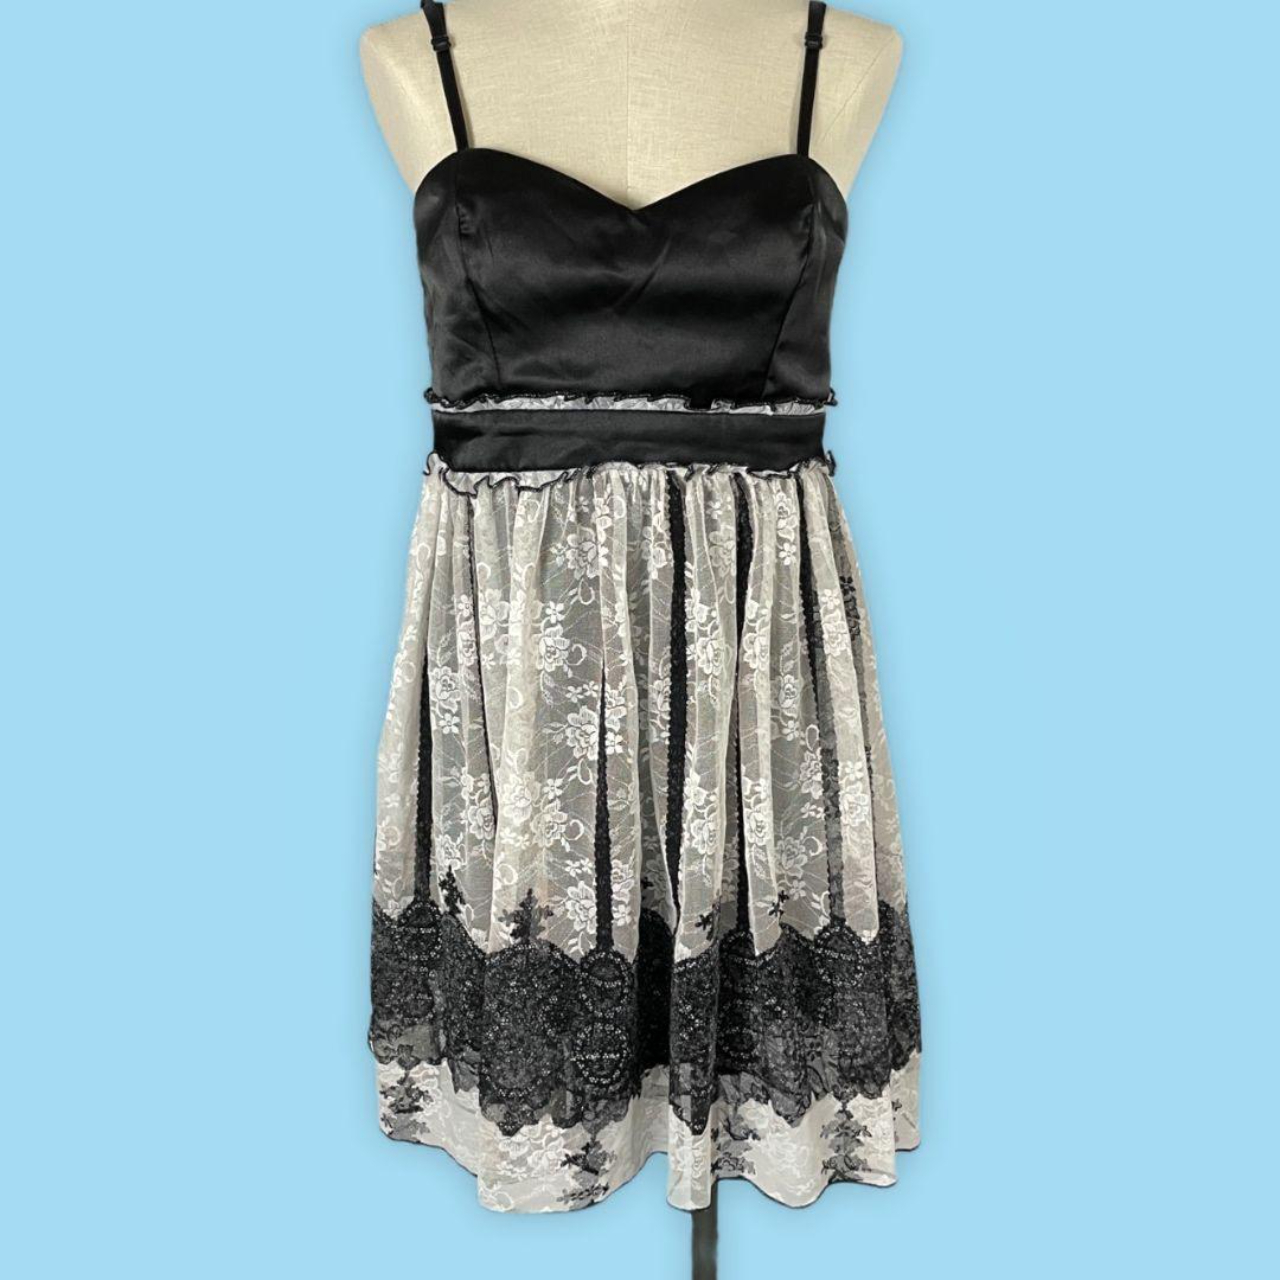 Product Image 1 - Lace Puff Dress  Black and White